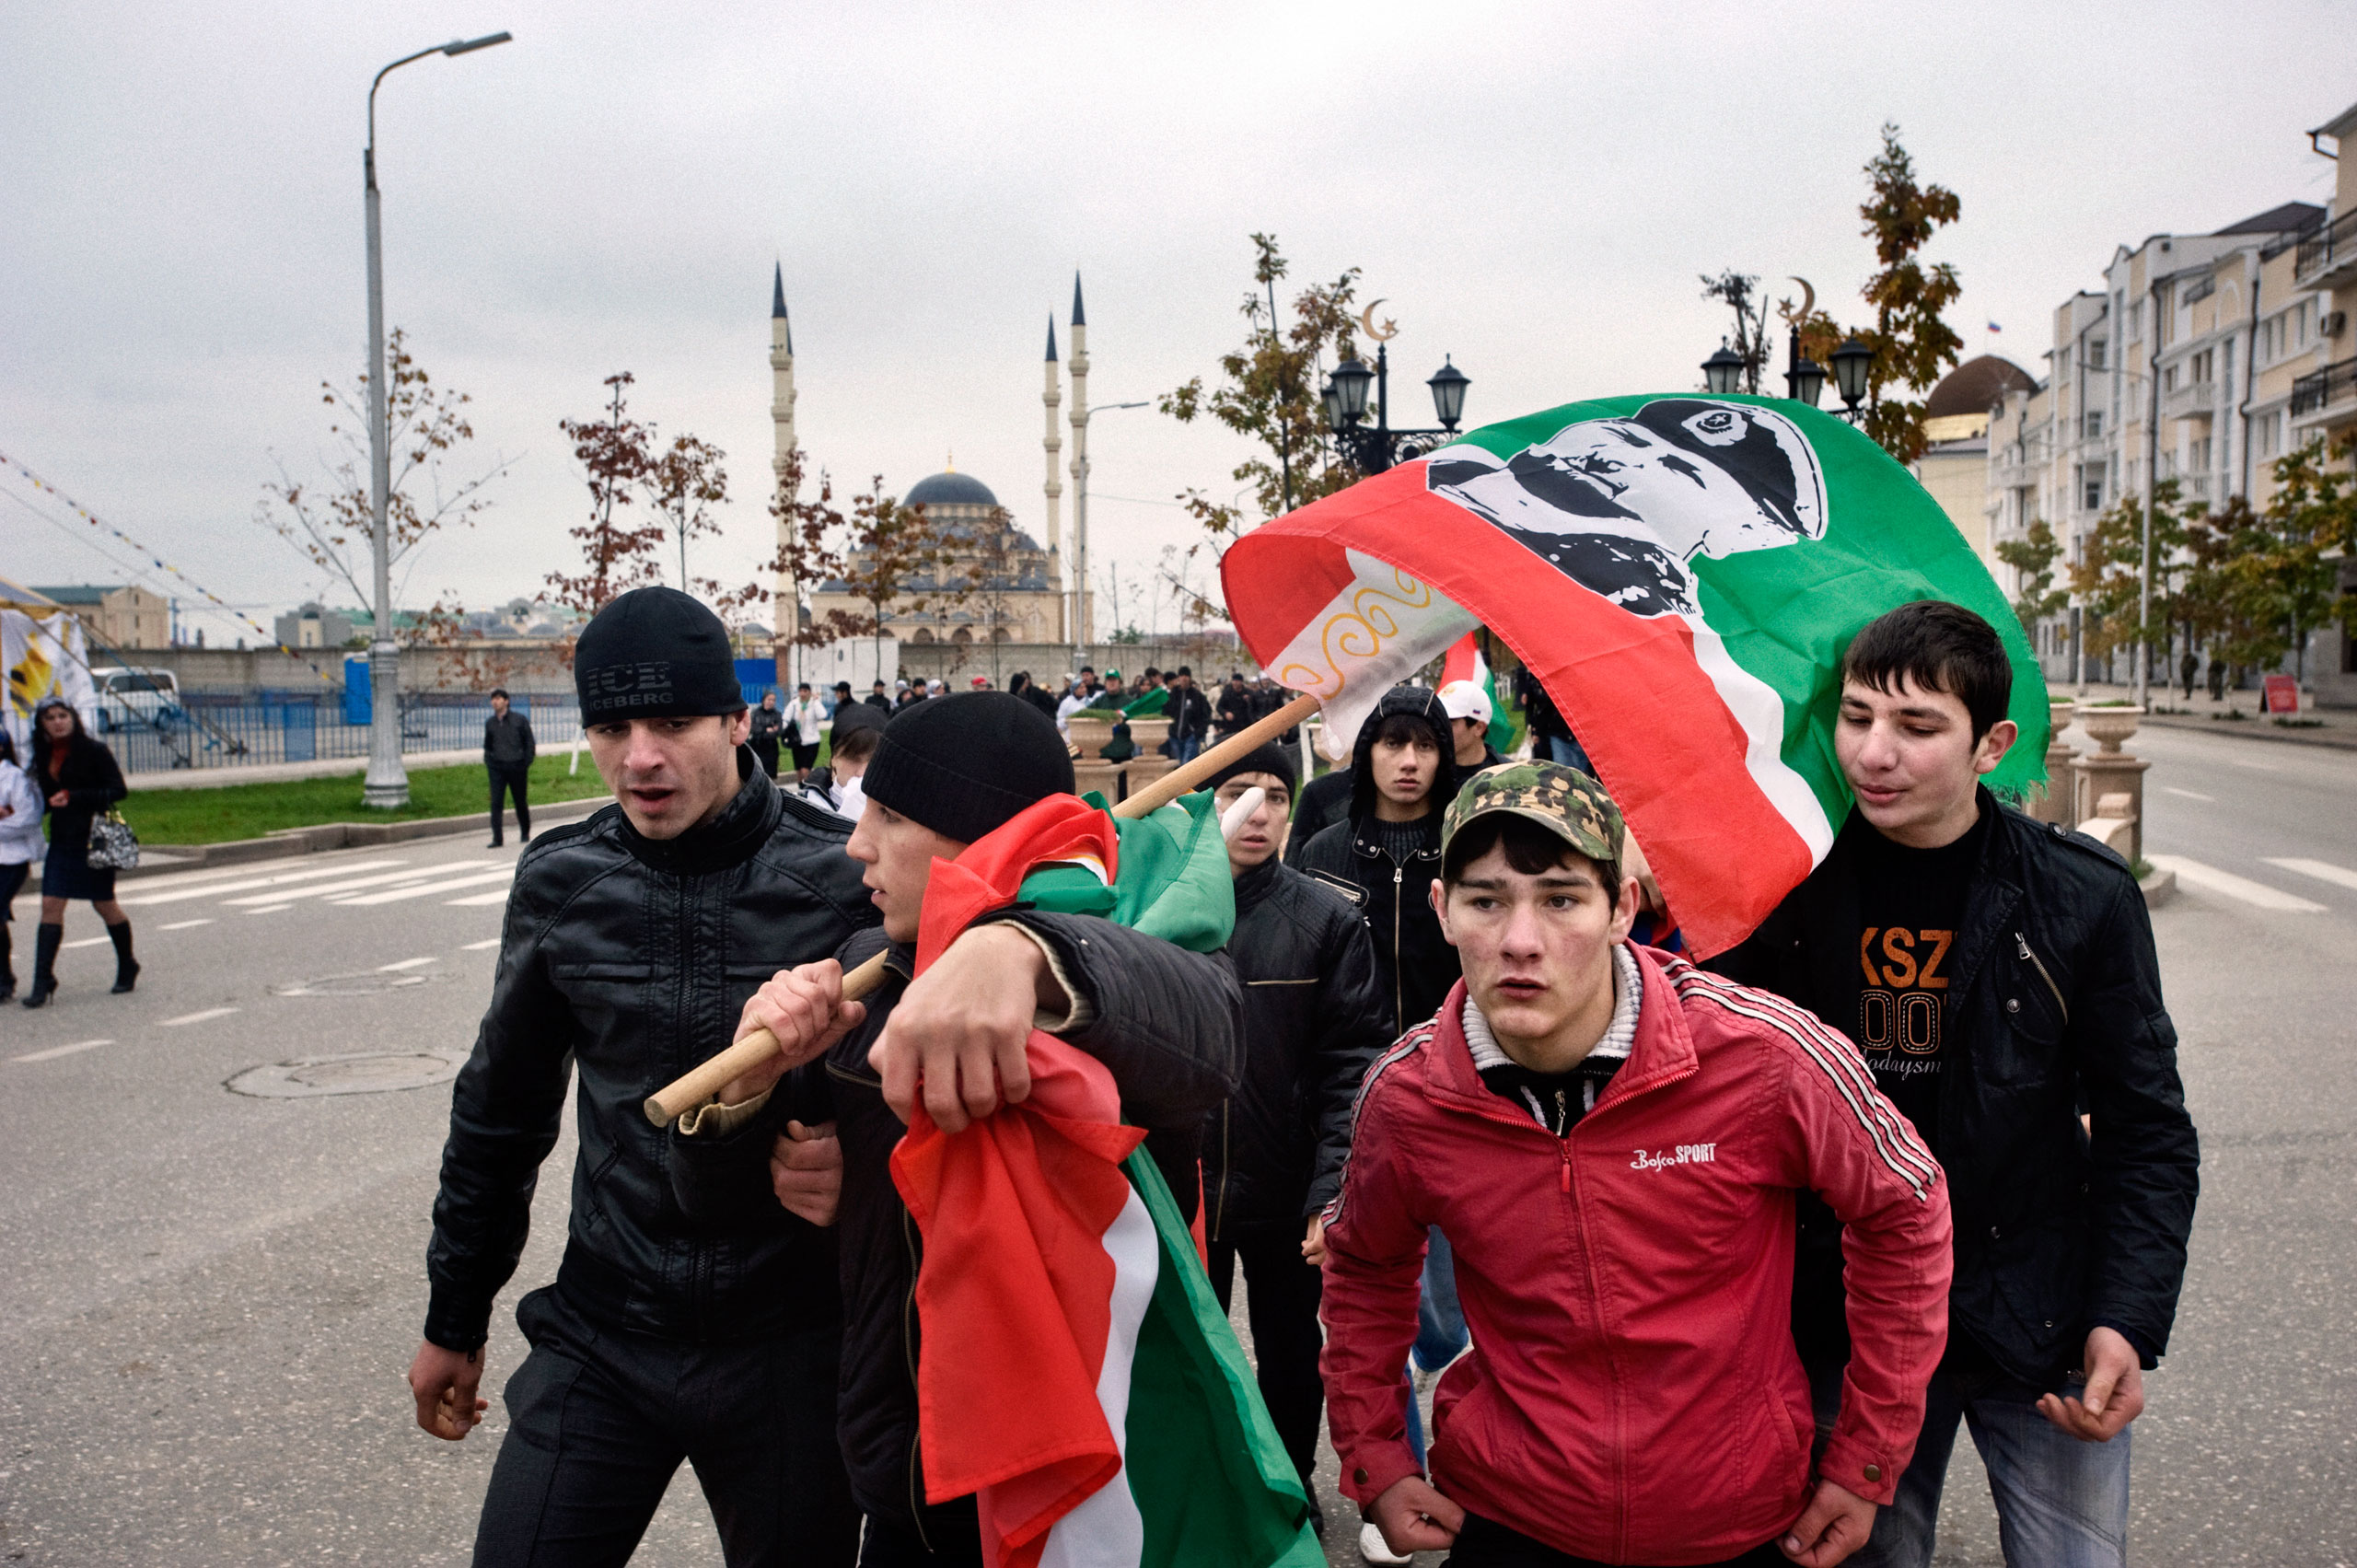 Members of the patriotic club Ramzan hold flags picturing Chechen leader Kadyrov on Putin's avenue, Grozny, Chechnya, November 2009.